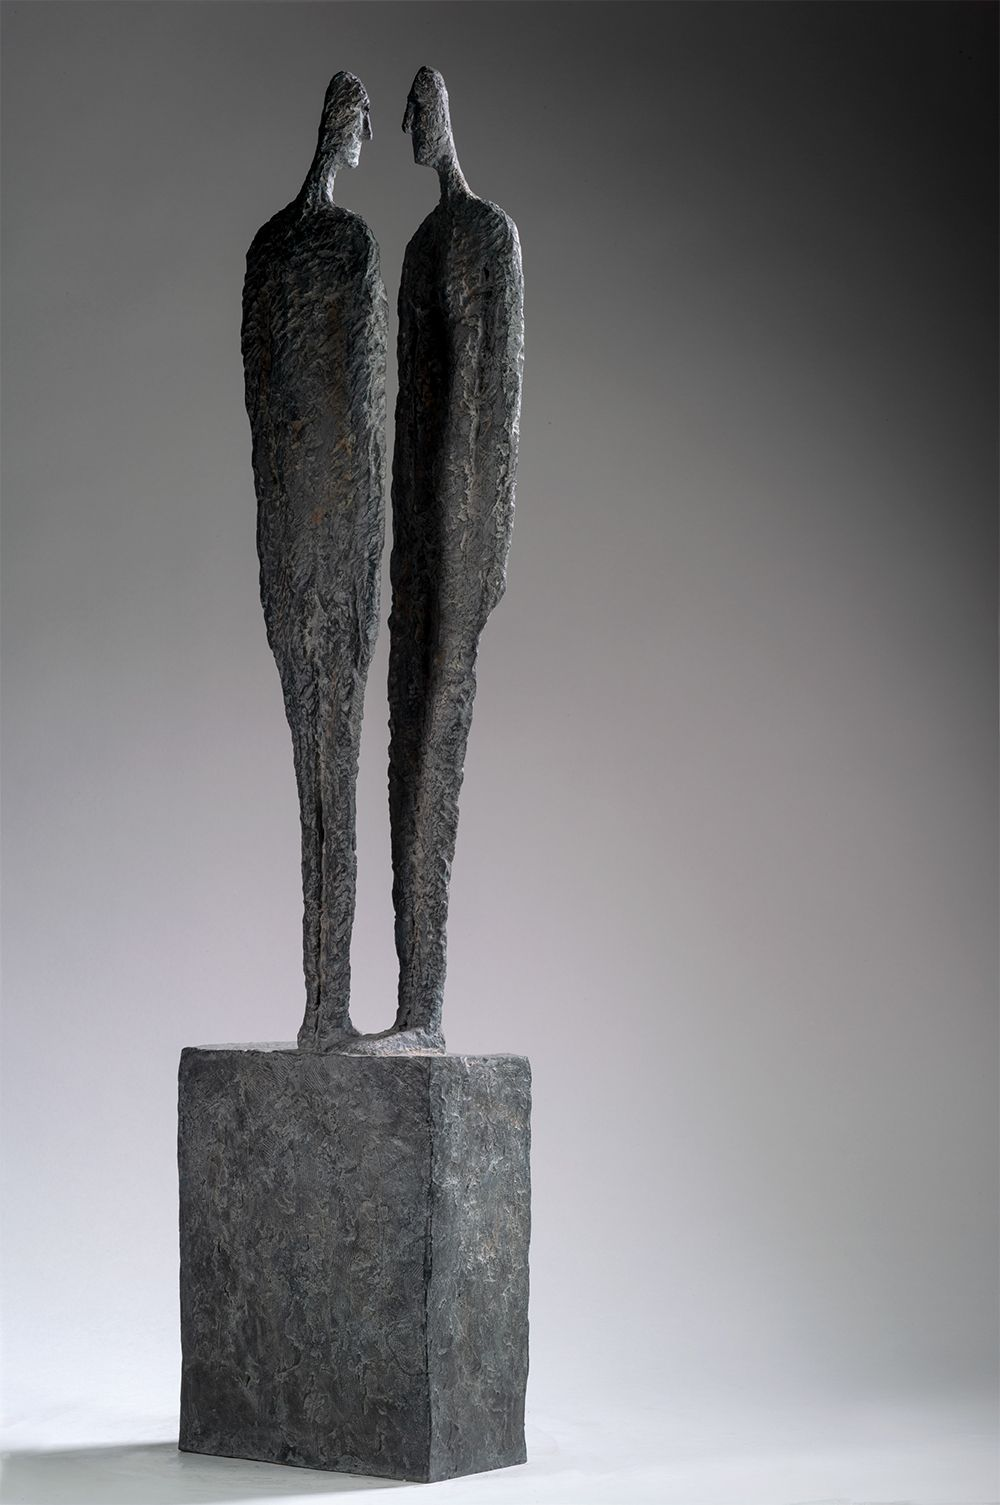 The Great Secret, Primary Forms series - Martine Demal - Sculpture - detail 1